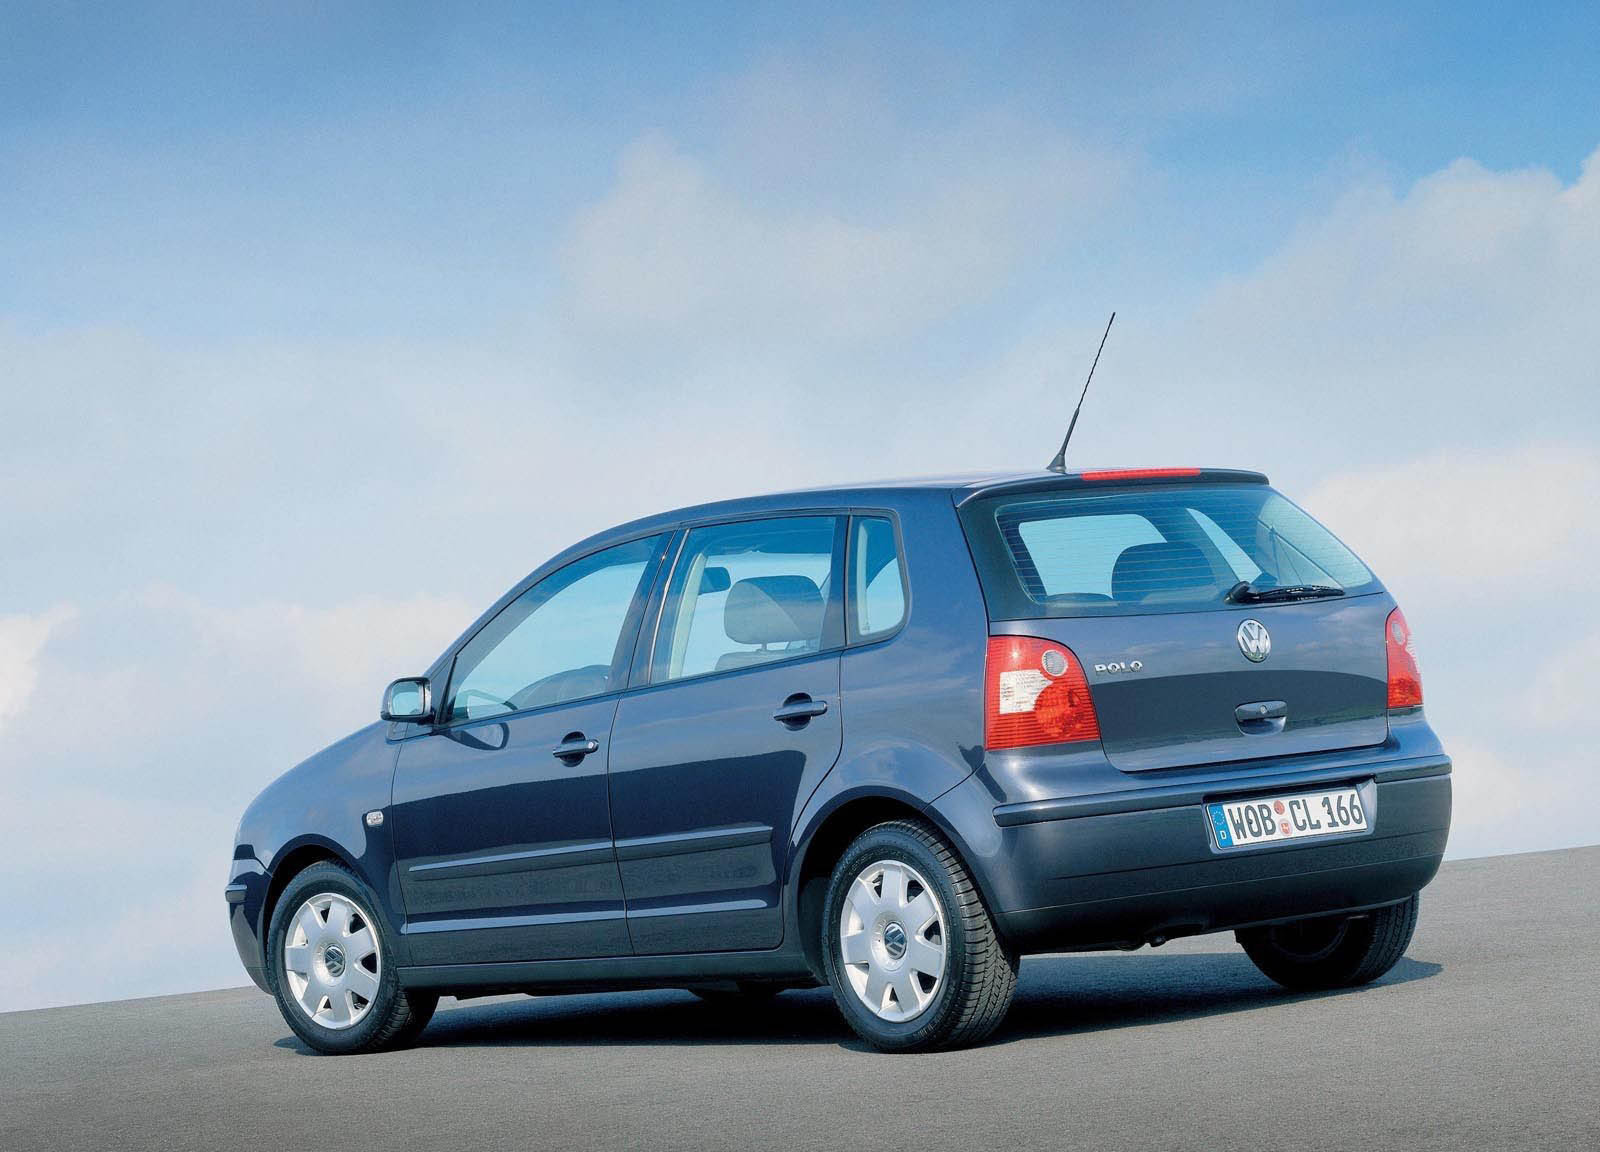 2005 volkswagen polo picture 17508 car review top speed. Black Bedroom Furniture Sets. Home Design Ideas